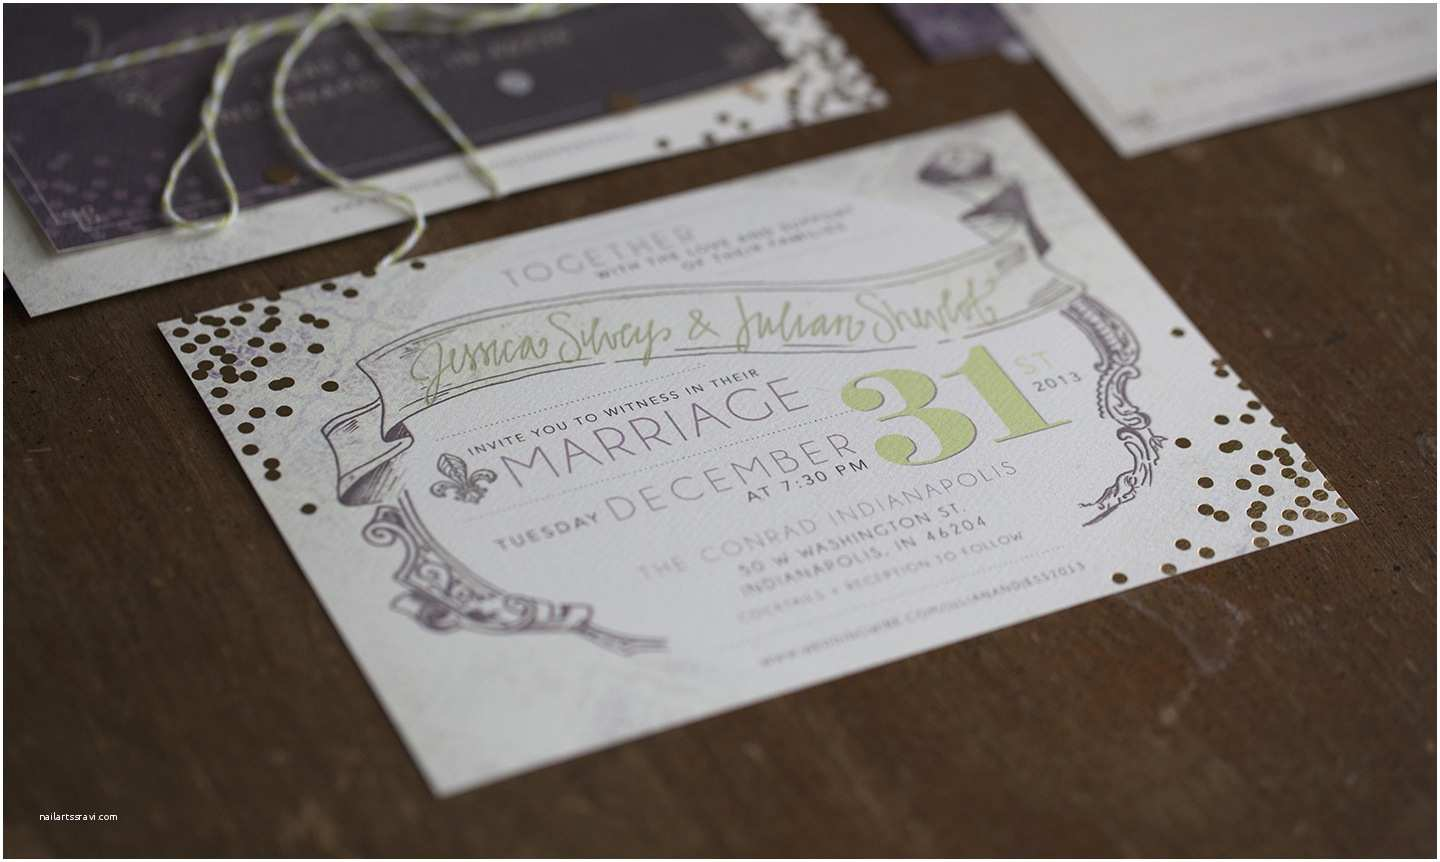 New Years Eve Wedding Invitations Jenny tod Creative Sparkled Vintage New Year's Eve